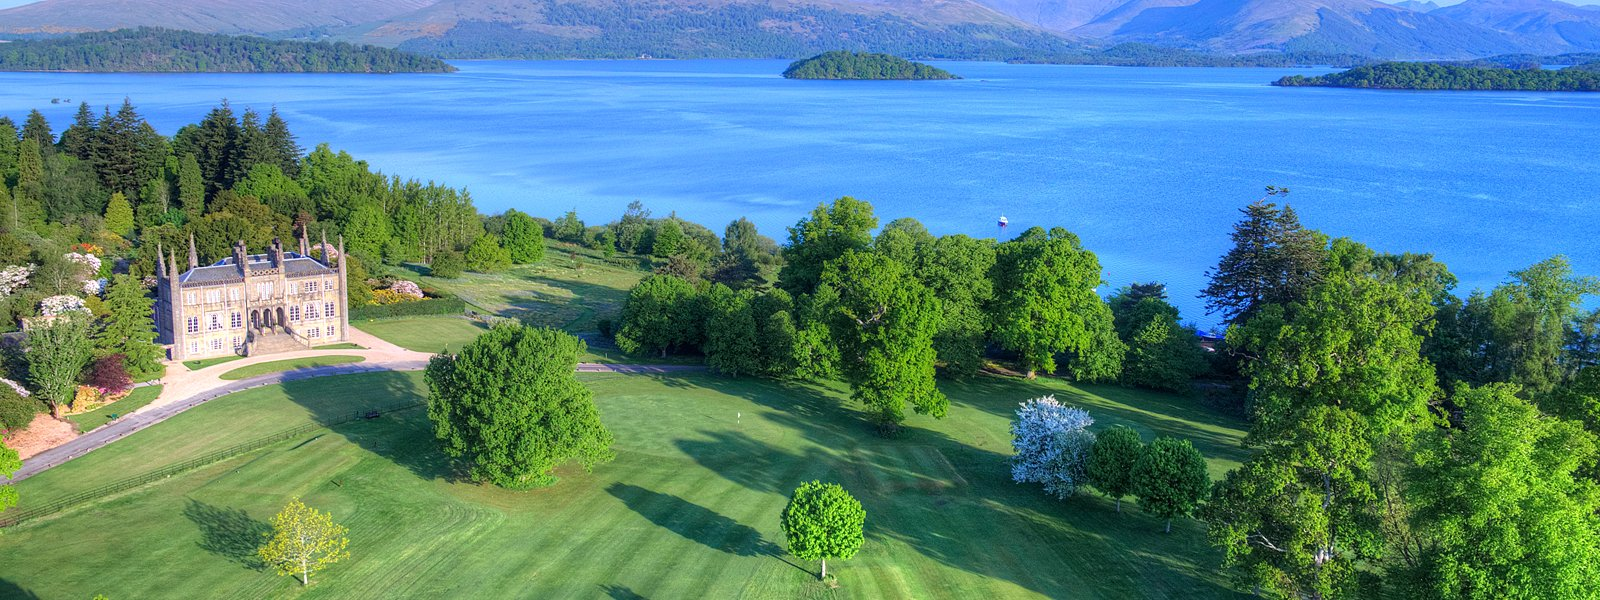 Aerial shot of Ross Priory and grounds, including Loch Lomond. Image courtesy of Aye in the Sky Aerial Photography